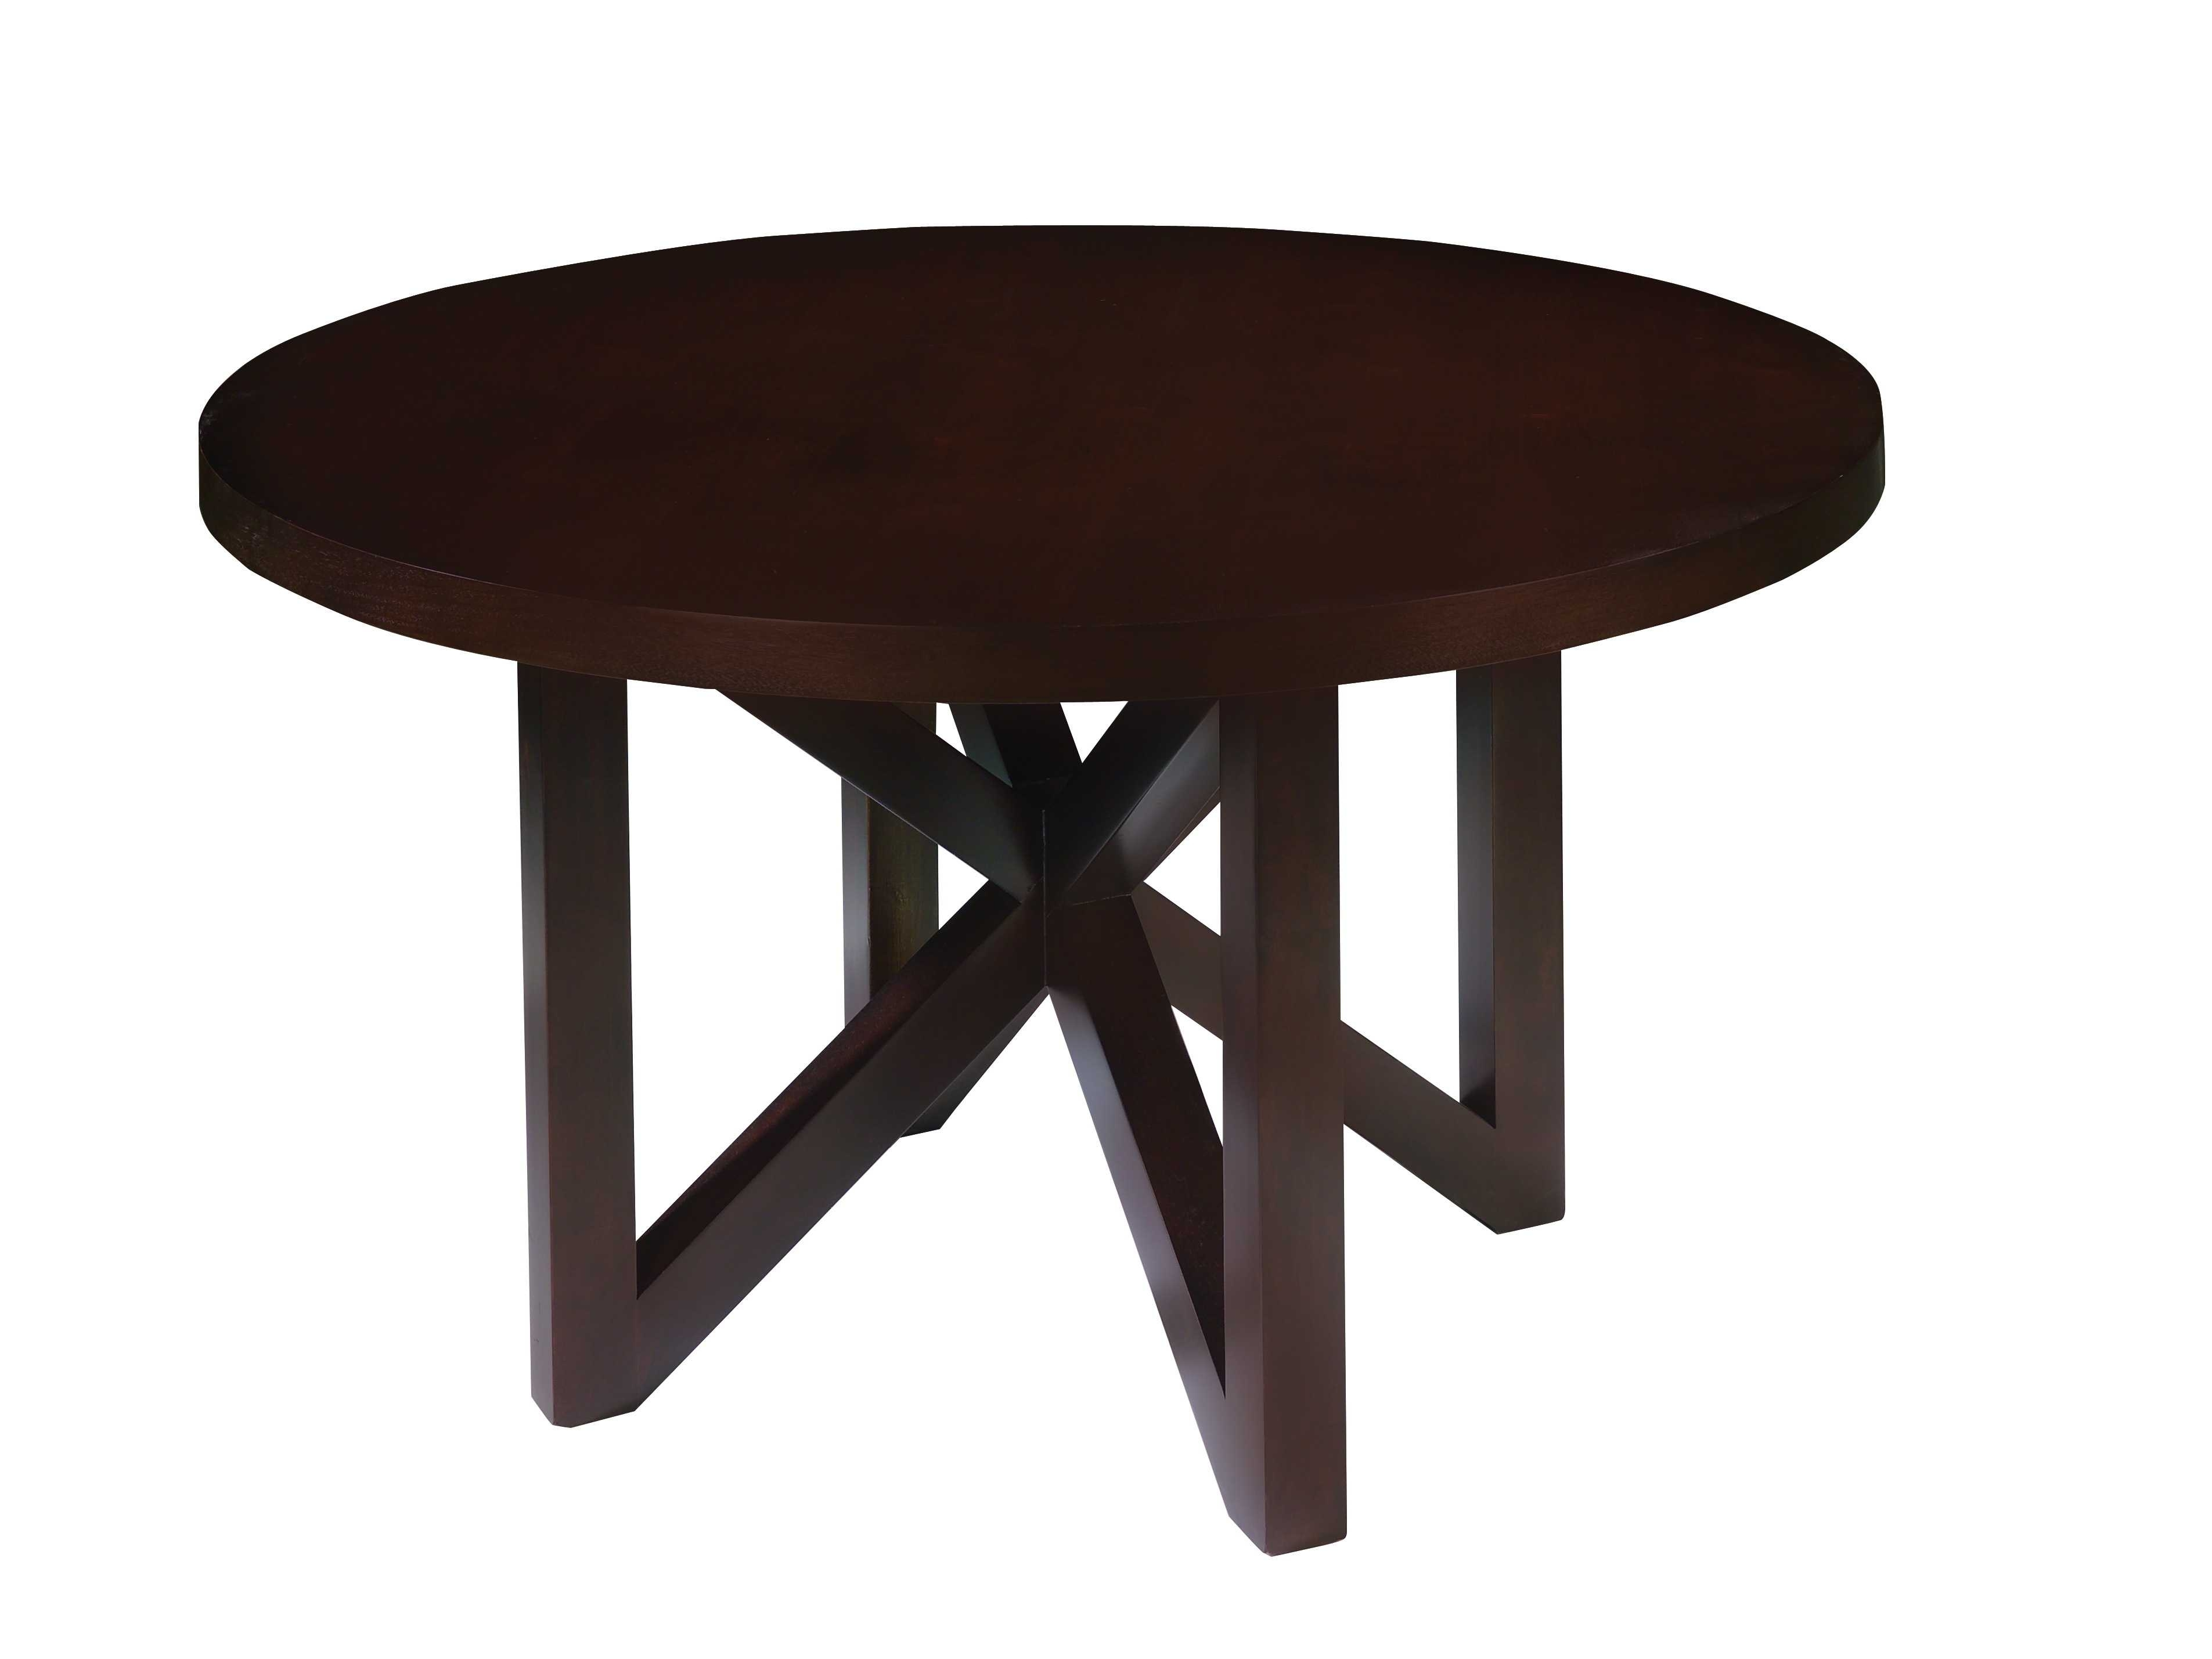 Allan Copley Designs Snowmass 54 Round Espresso Dining Within Most Recently Released Caira Black Round Dining Tables (View 9 of 20)